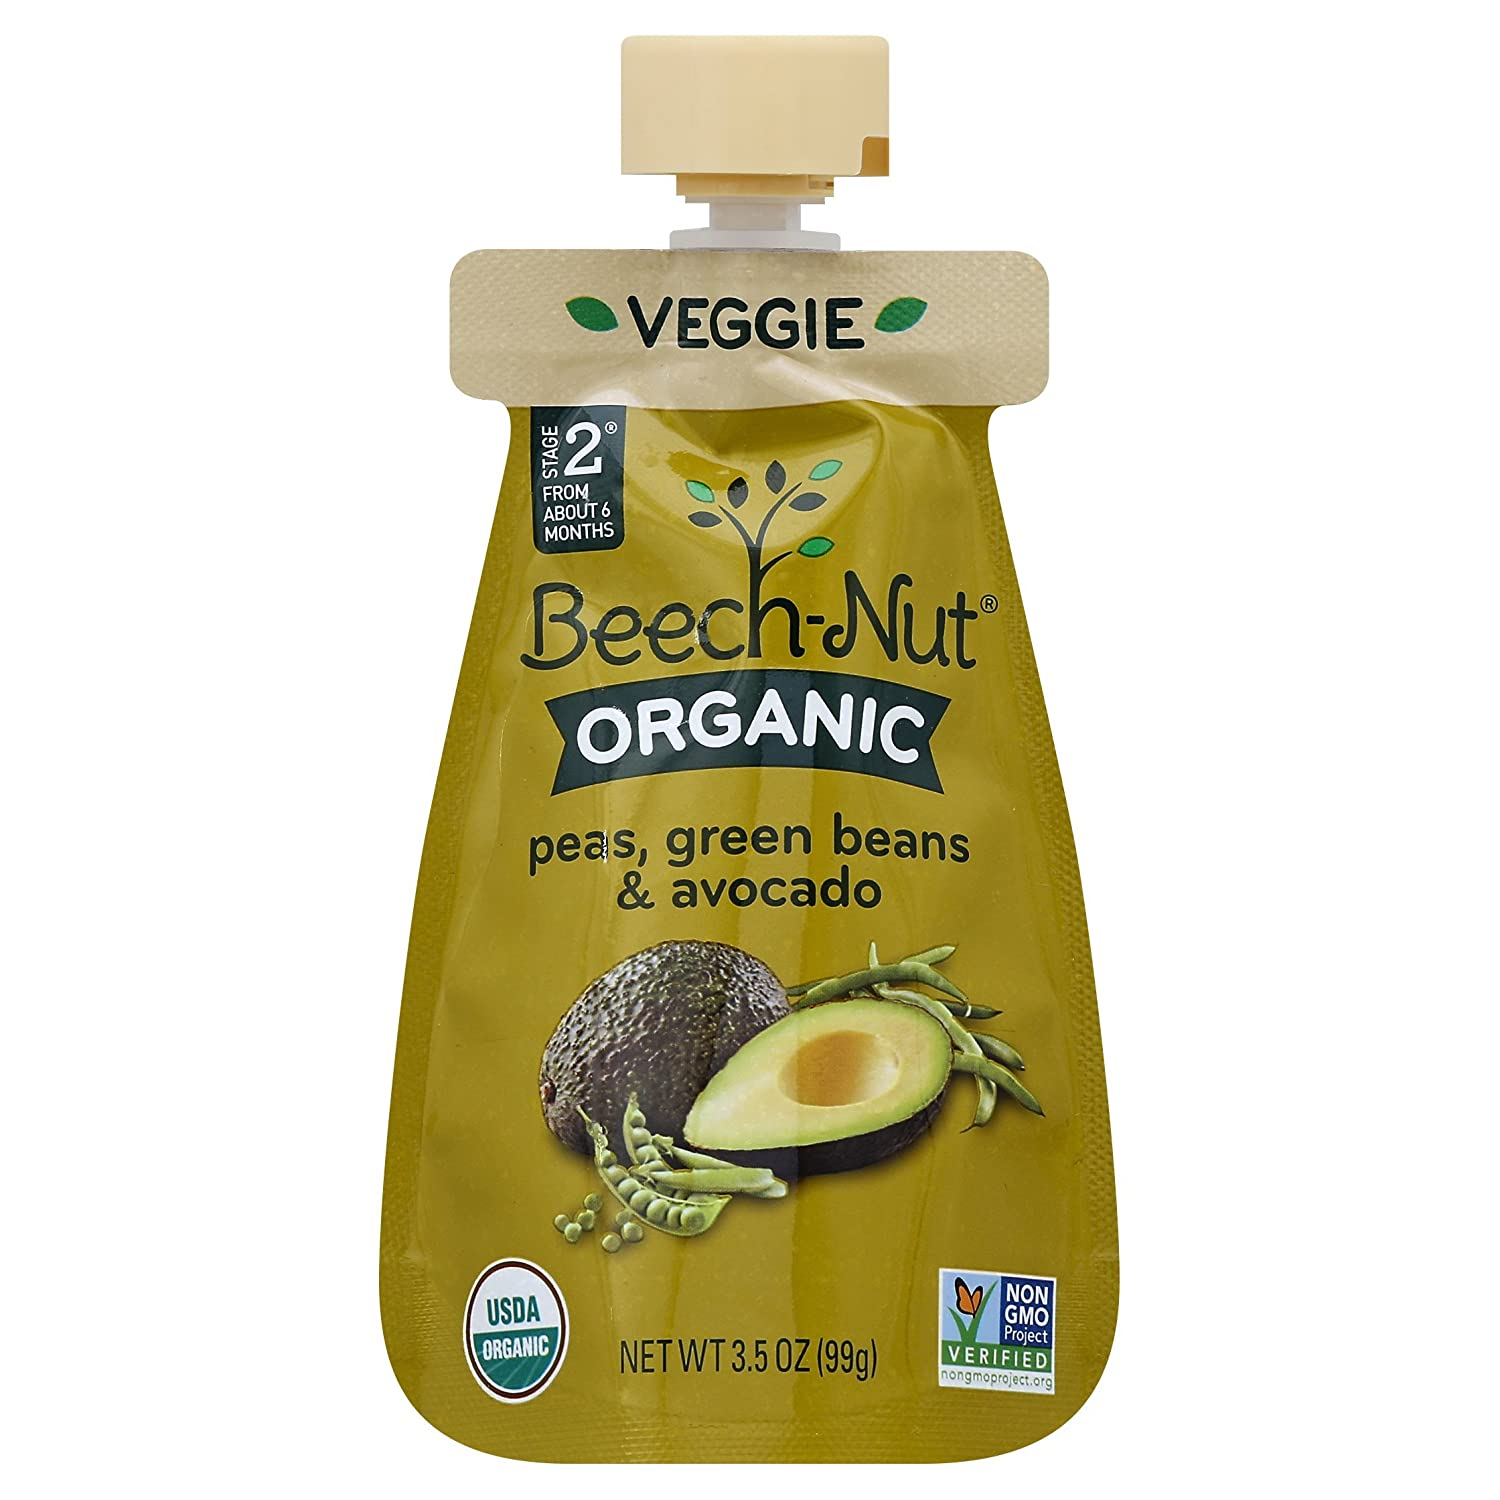 Beech-Nut Organic Baby Food, Stage 2, Organic Peas, Green Beans & Avocado, 3.5 Ounce Pouch (Pack of 12): Amazon.com: Grocery & Gourmet Food